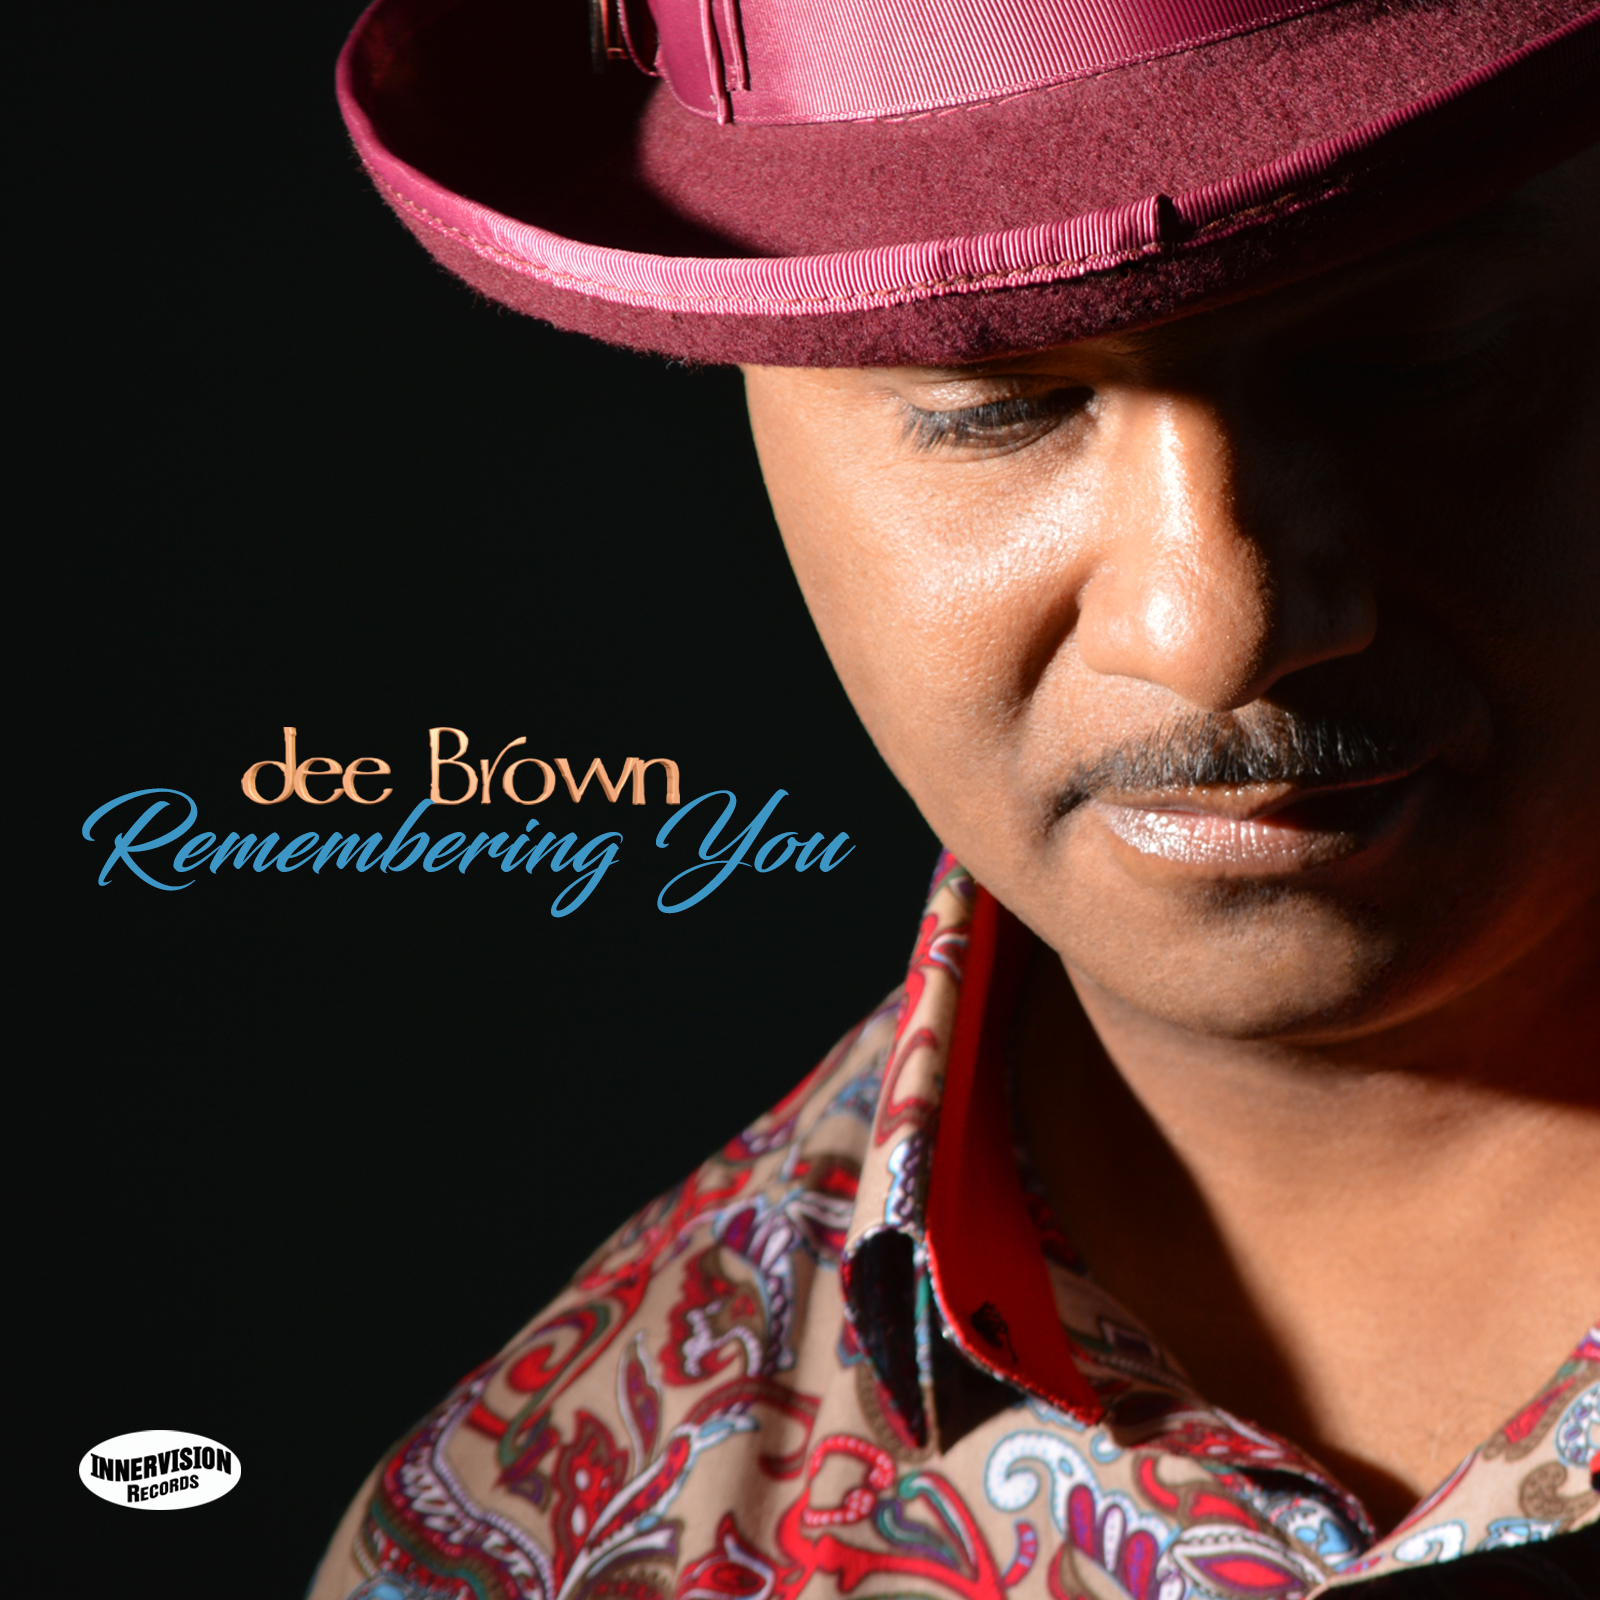 dee Brown - Remembering You